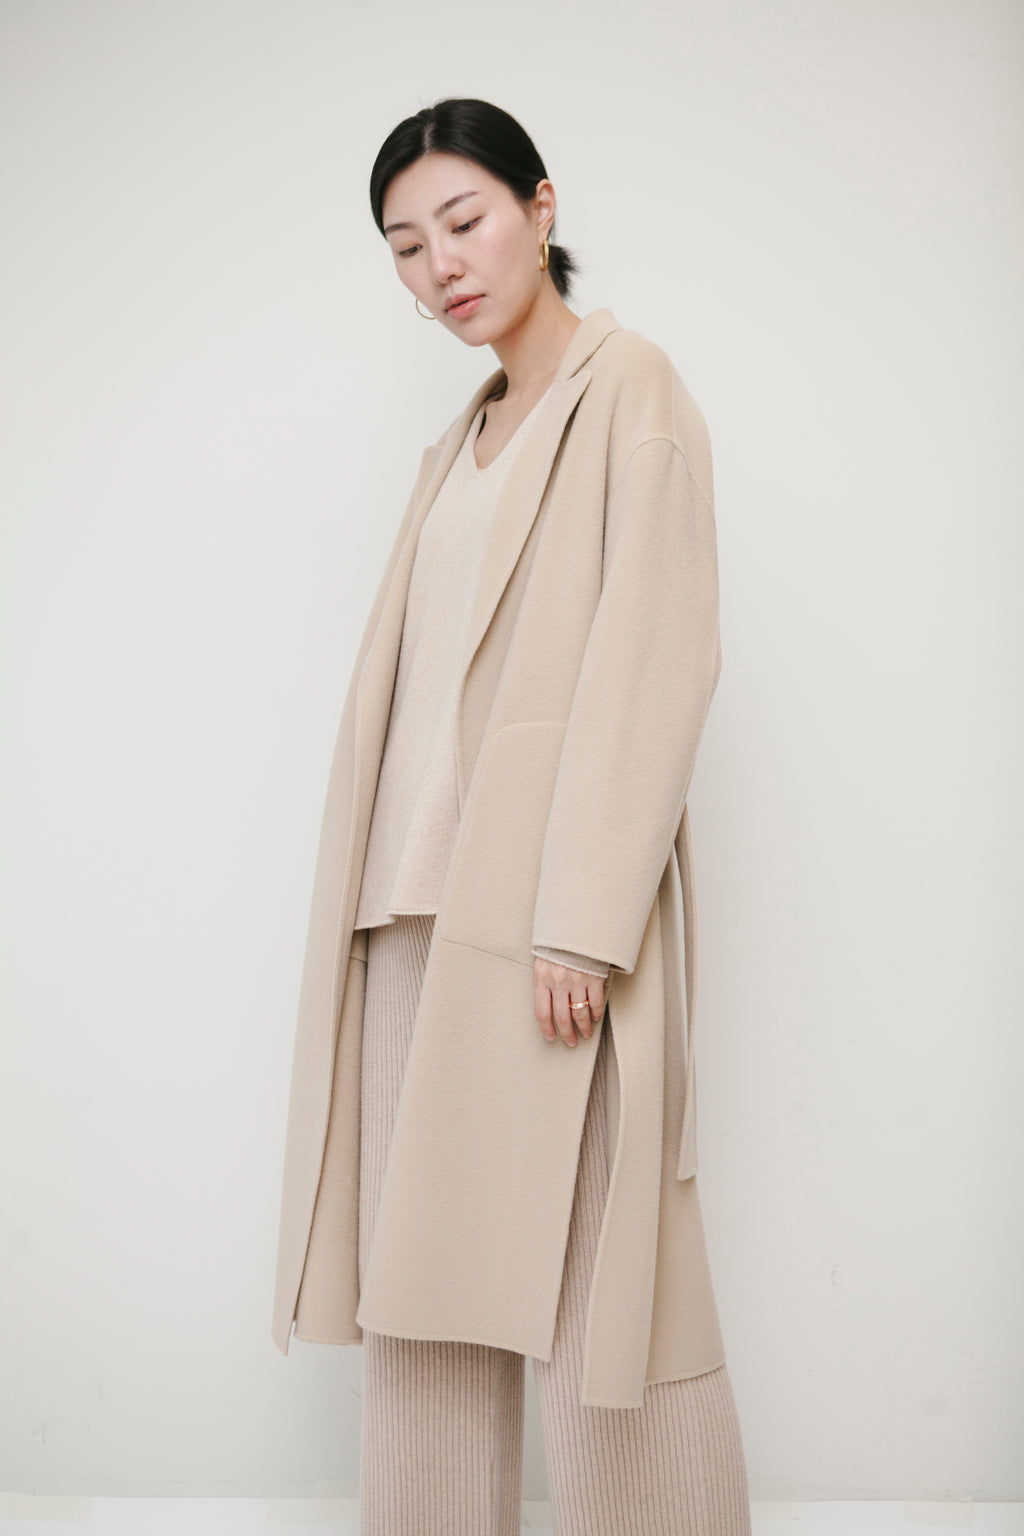 Light Beige Wool Coat